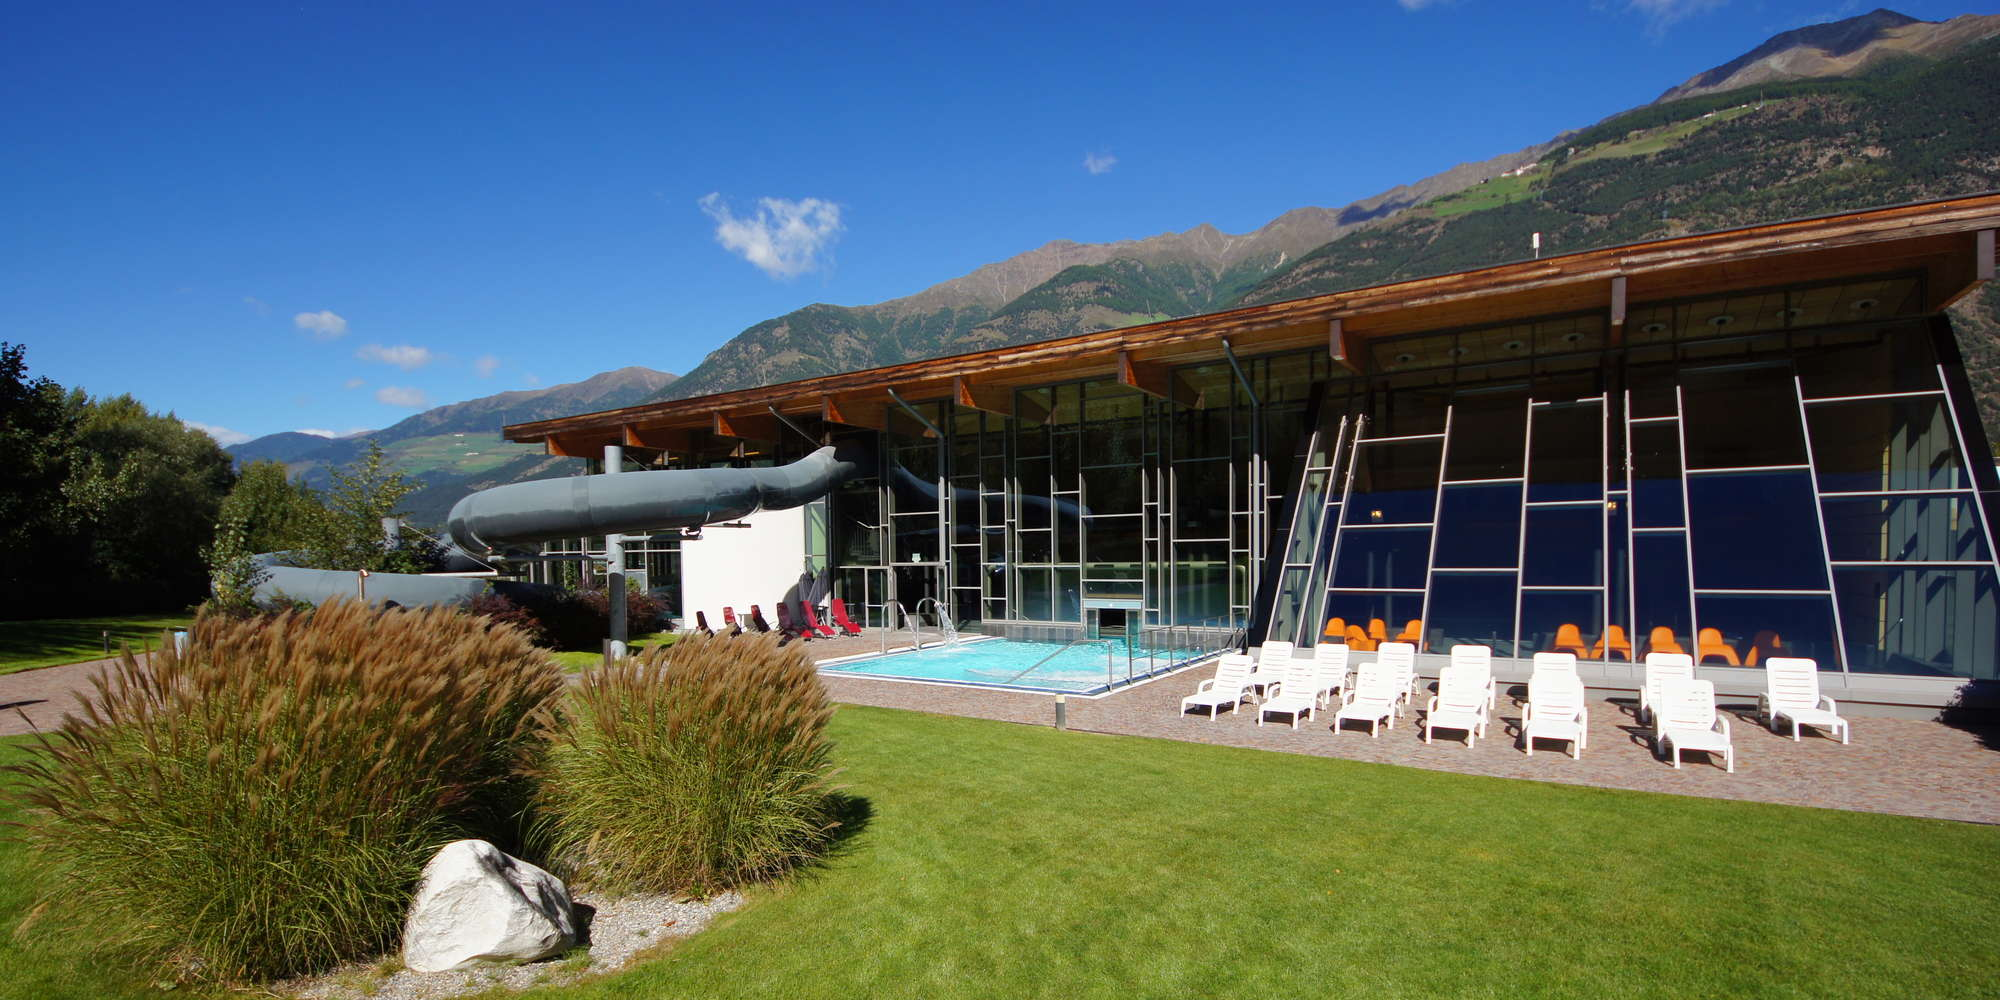 Aquaforum Latsch, Pension Latsch, Pension Vinschgau